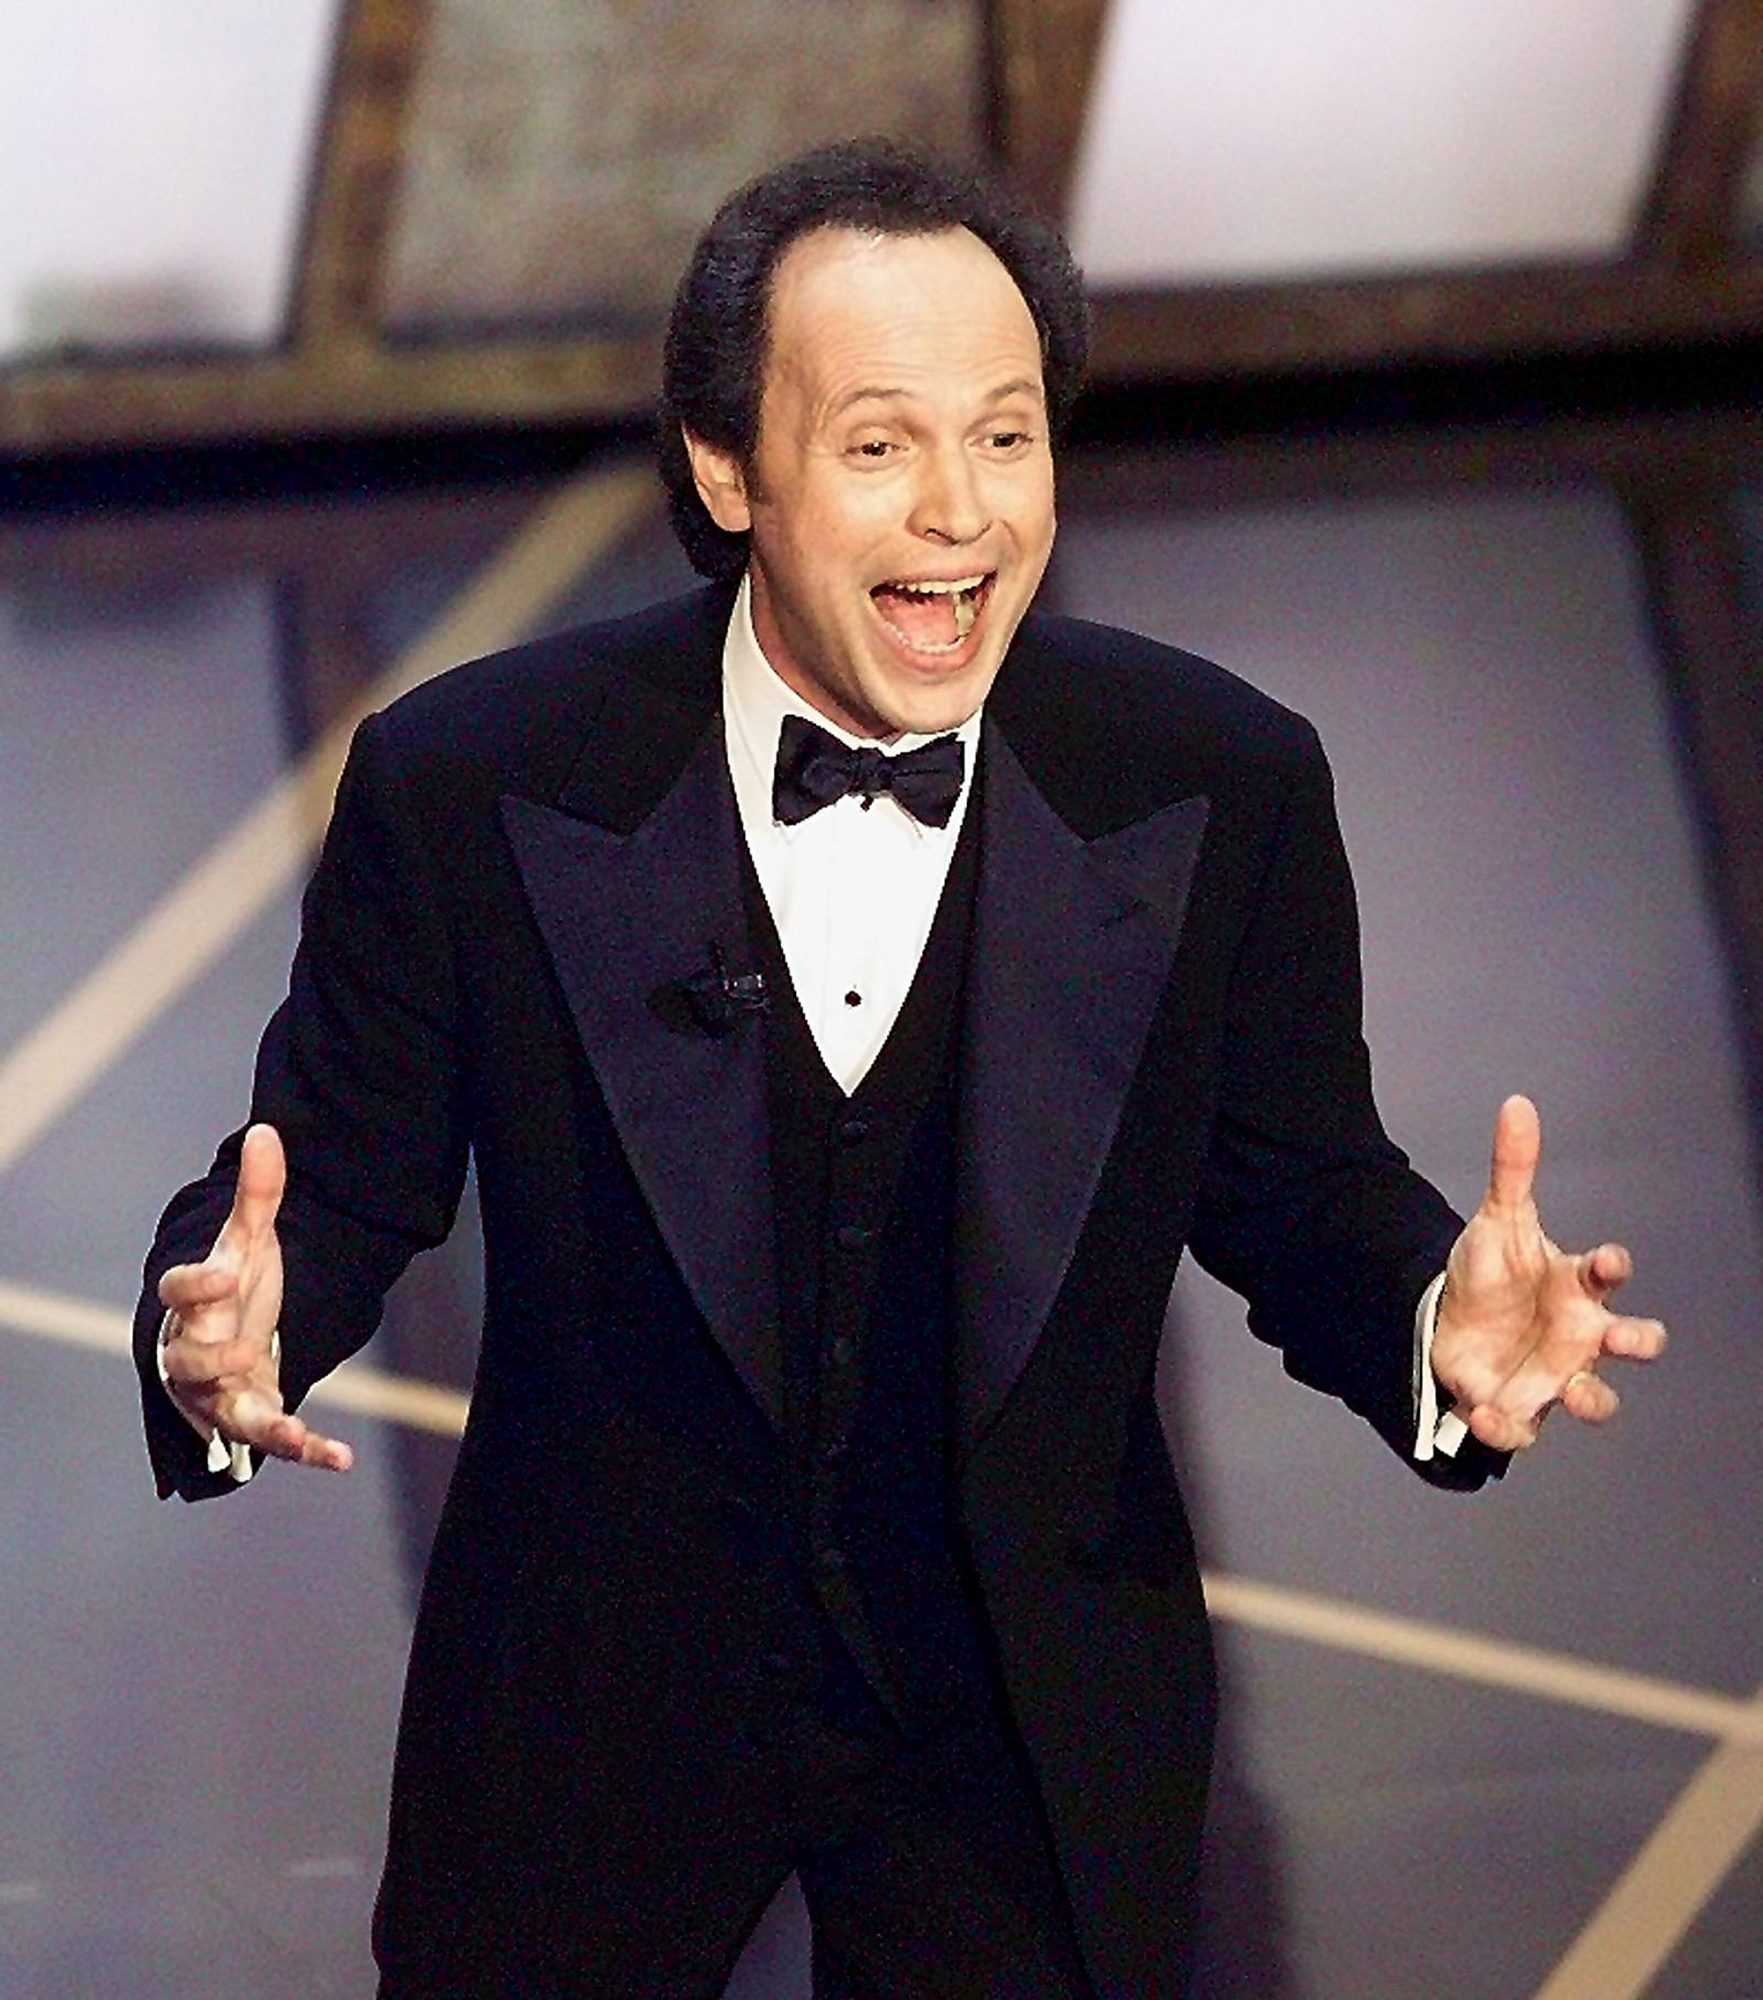 Comedian Billy Crystal performs the opening act as